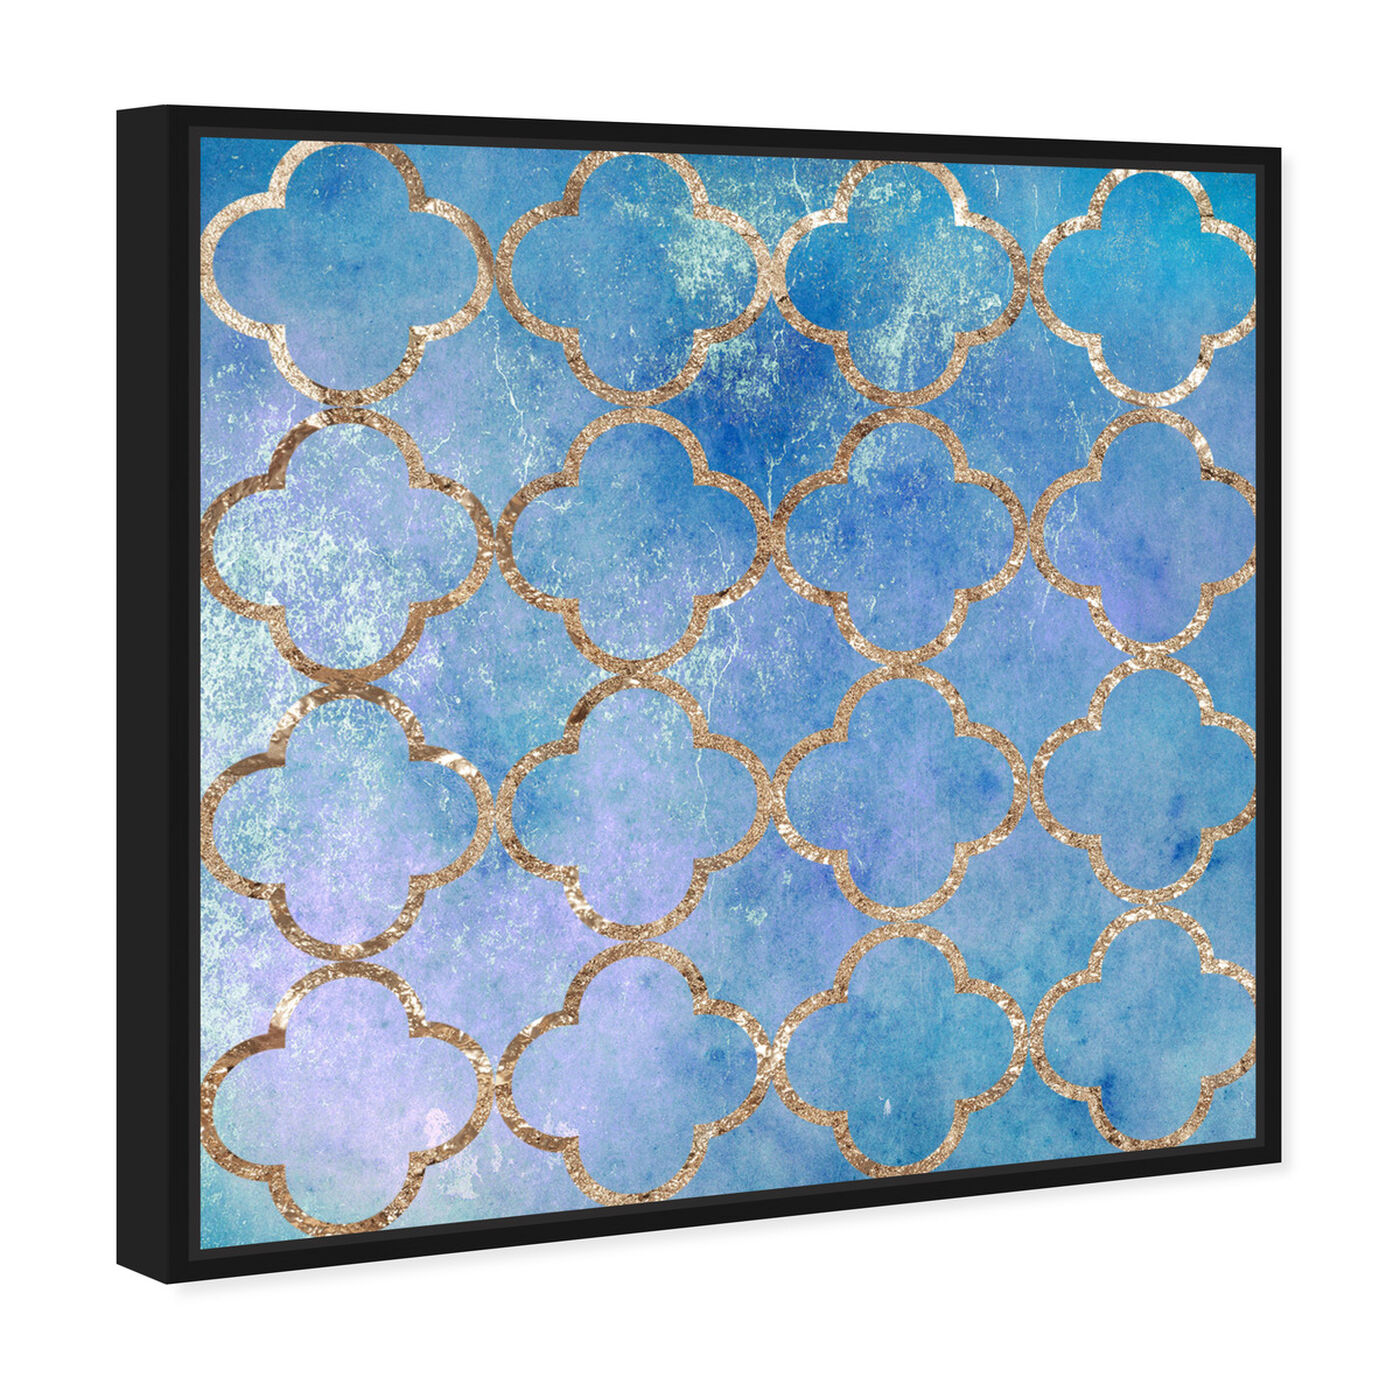 Angled view of Volare Blu featuring abstract and patterns art.